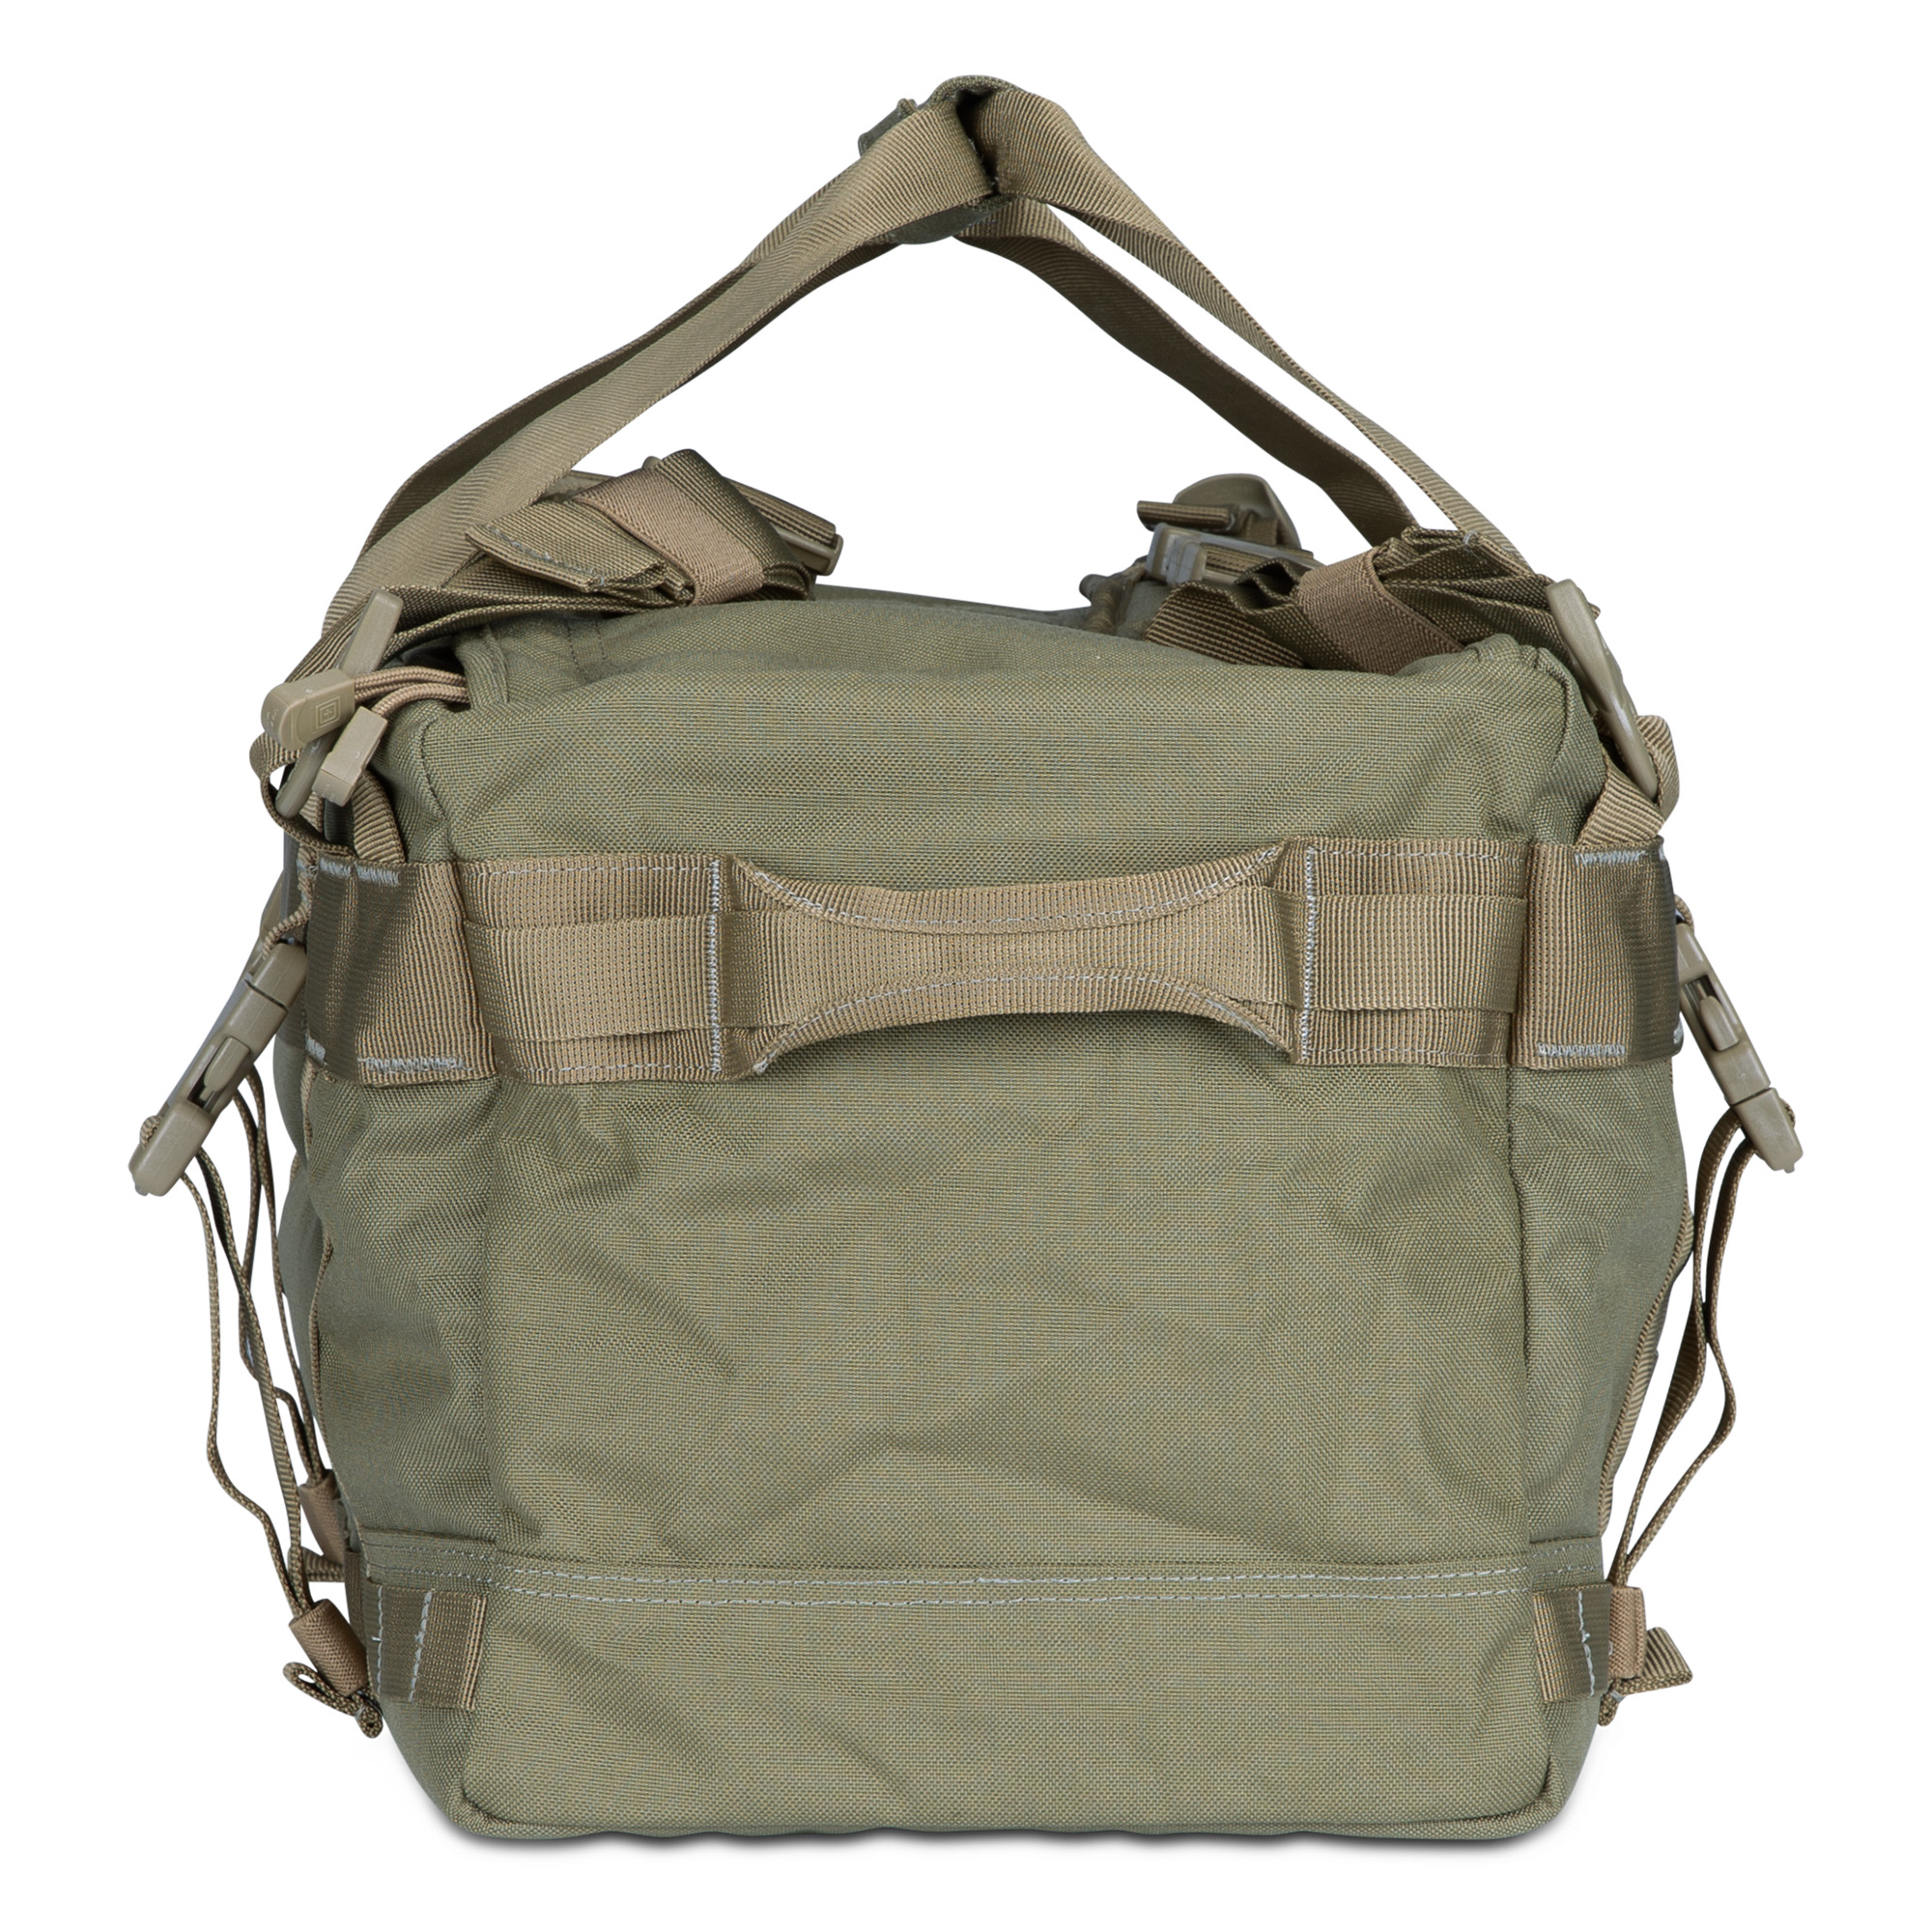 Túi Trống 5.11 Tactical RUSH LBD MIKE 40L – Sandstone